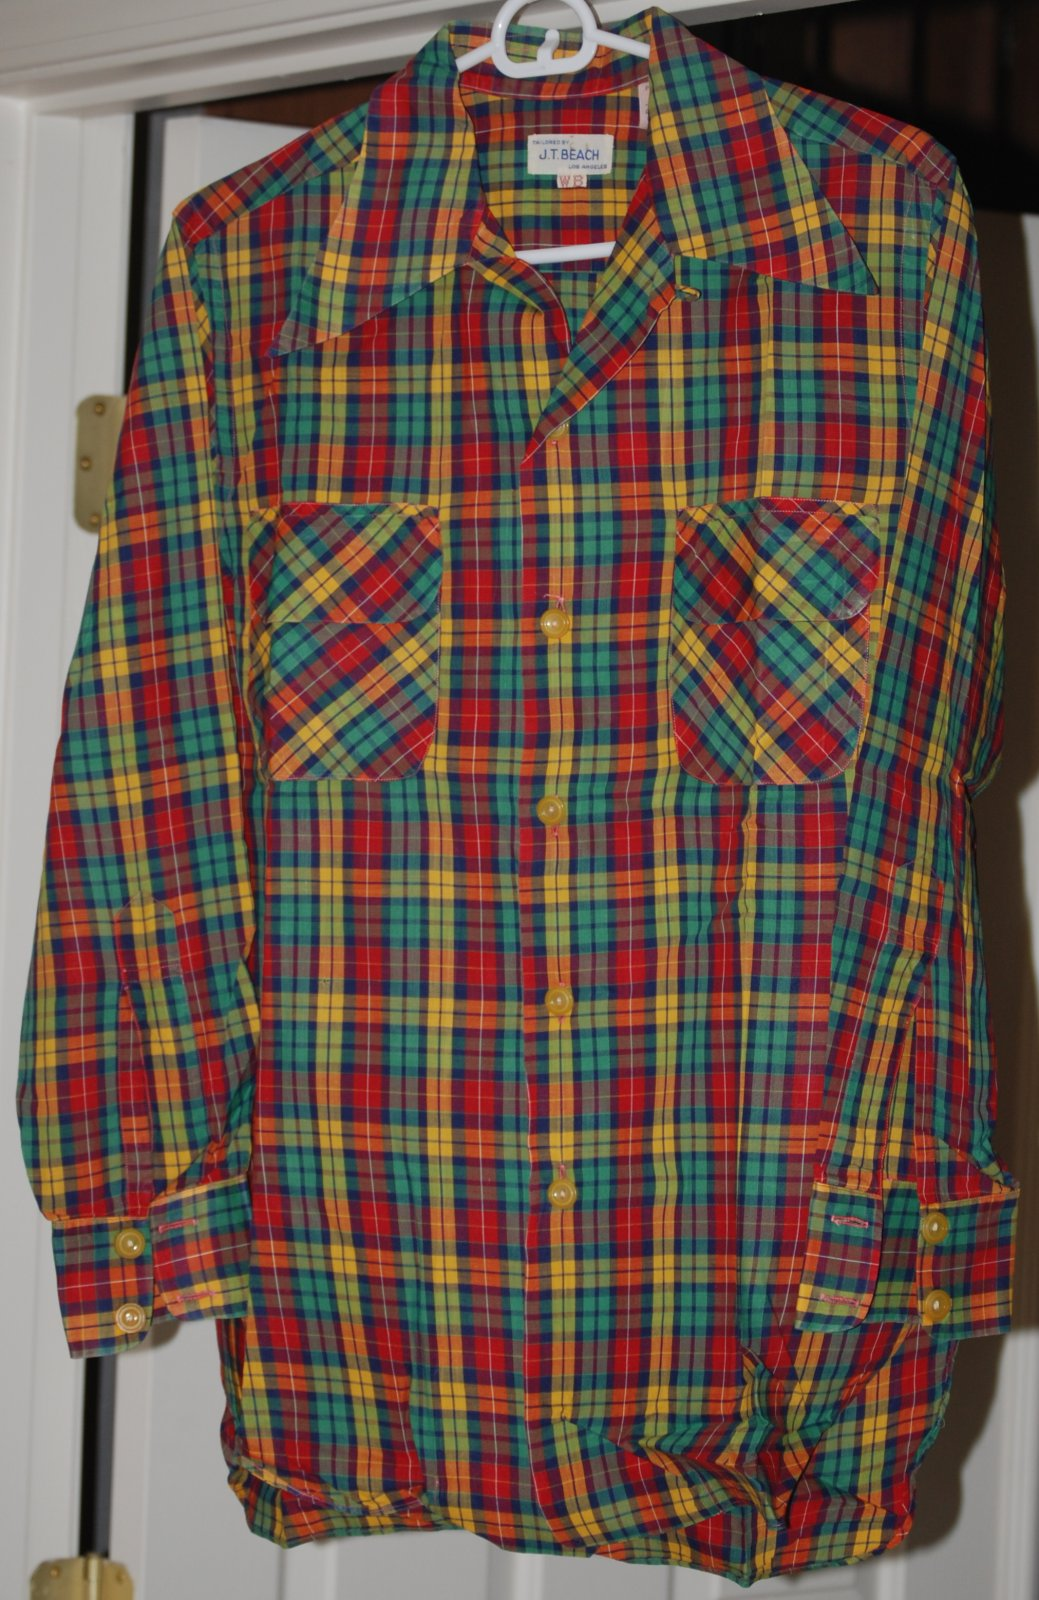 Click image for larger version  Name:DSC_2582 wally's shirt.jpg Views:83 Size:329.4 KB ID:64194